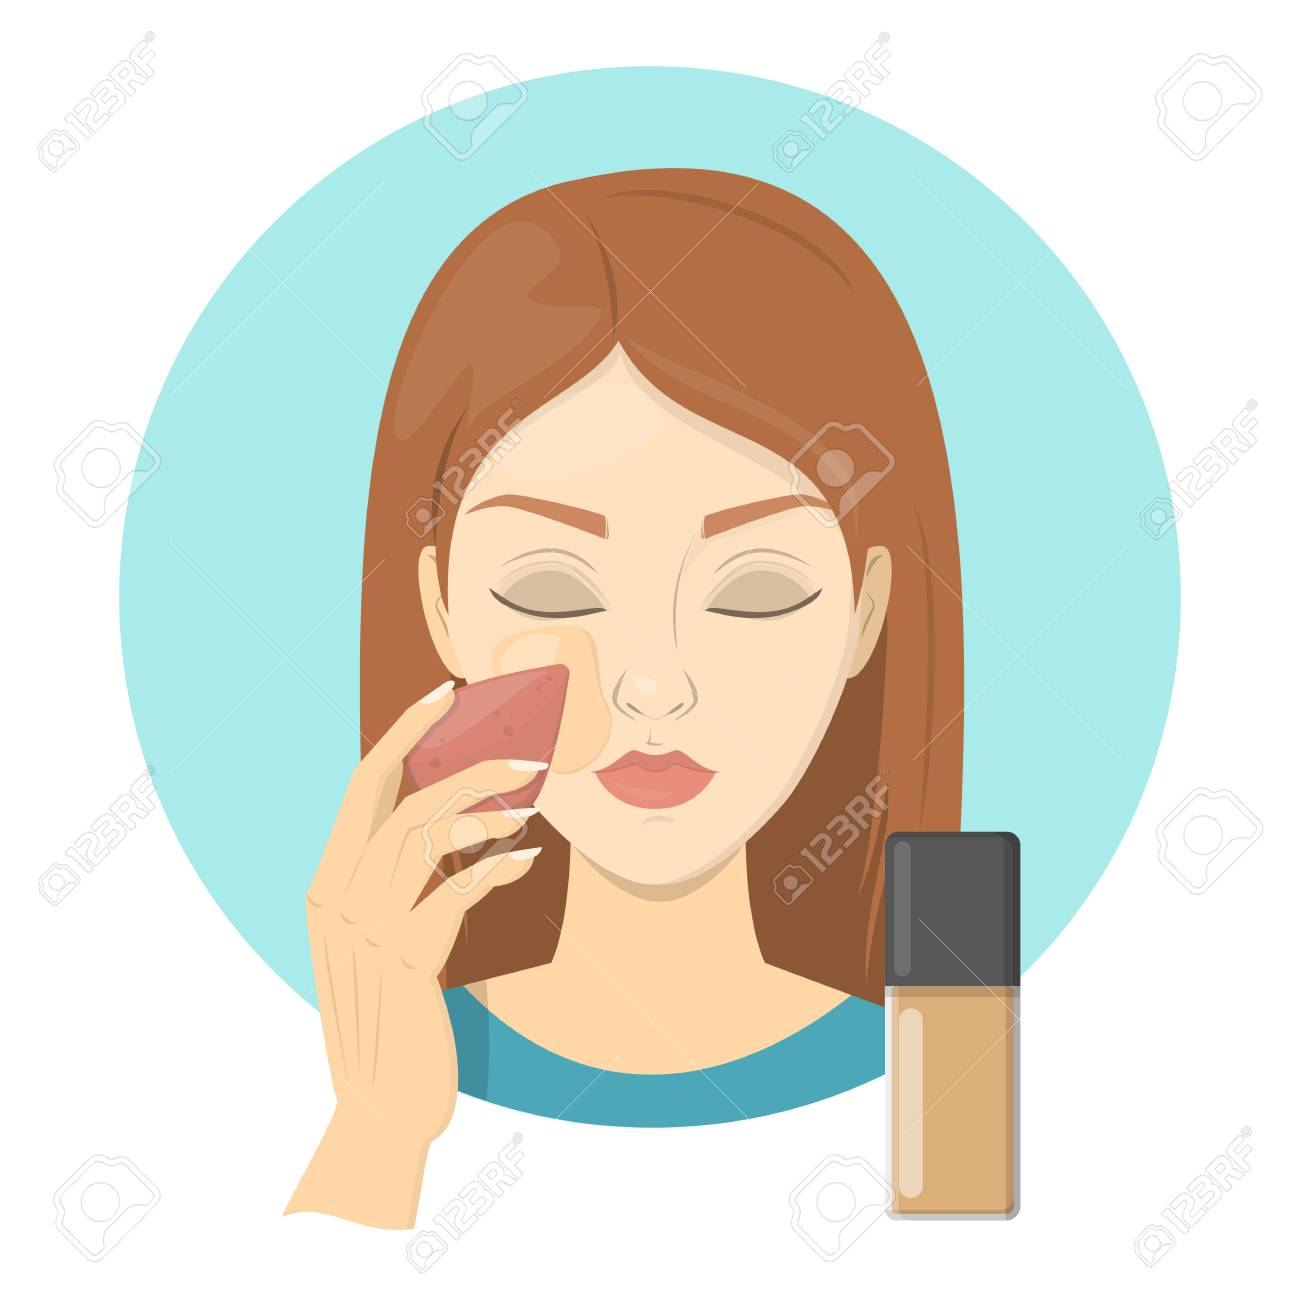 Woman Applying Face Foundation For Perfect Makeup Beautiful Royalty Free Cliparts Vectors And Stock Illustration Image 127688502